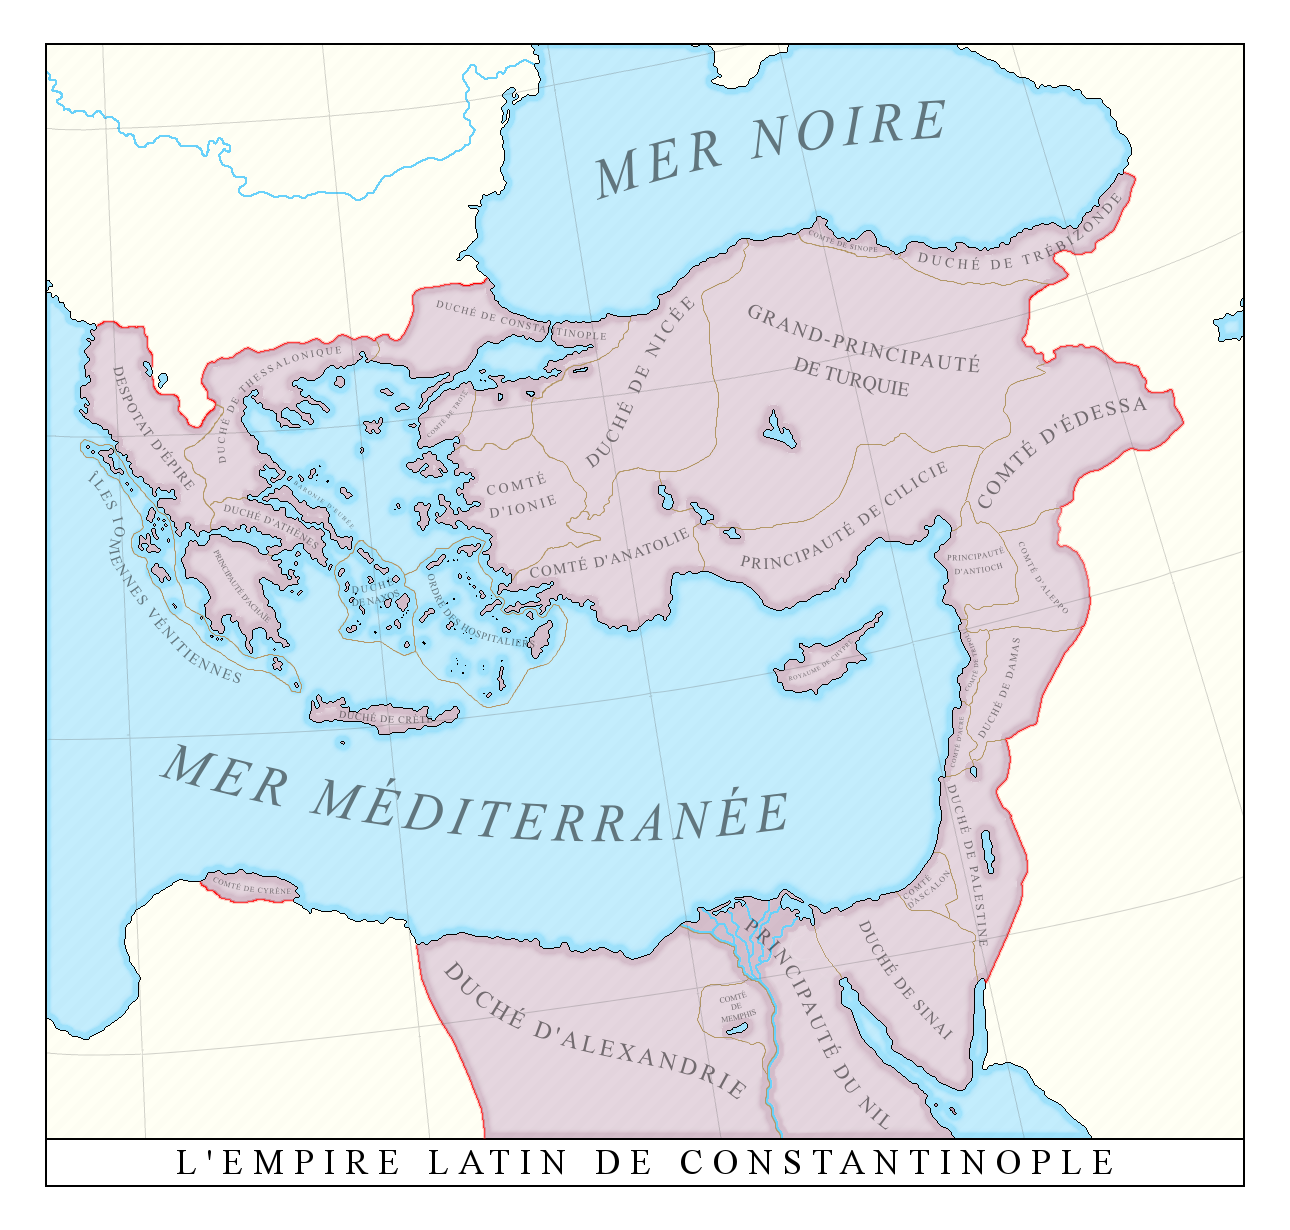 The Latin Empire Of Constantinople By Xpnck